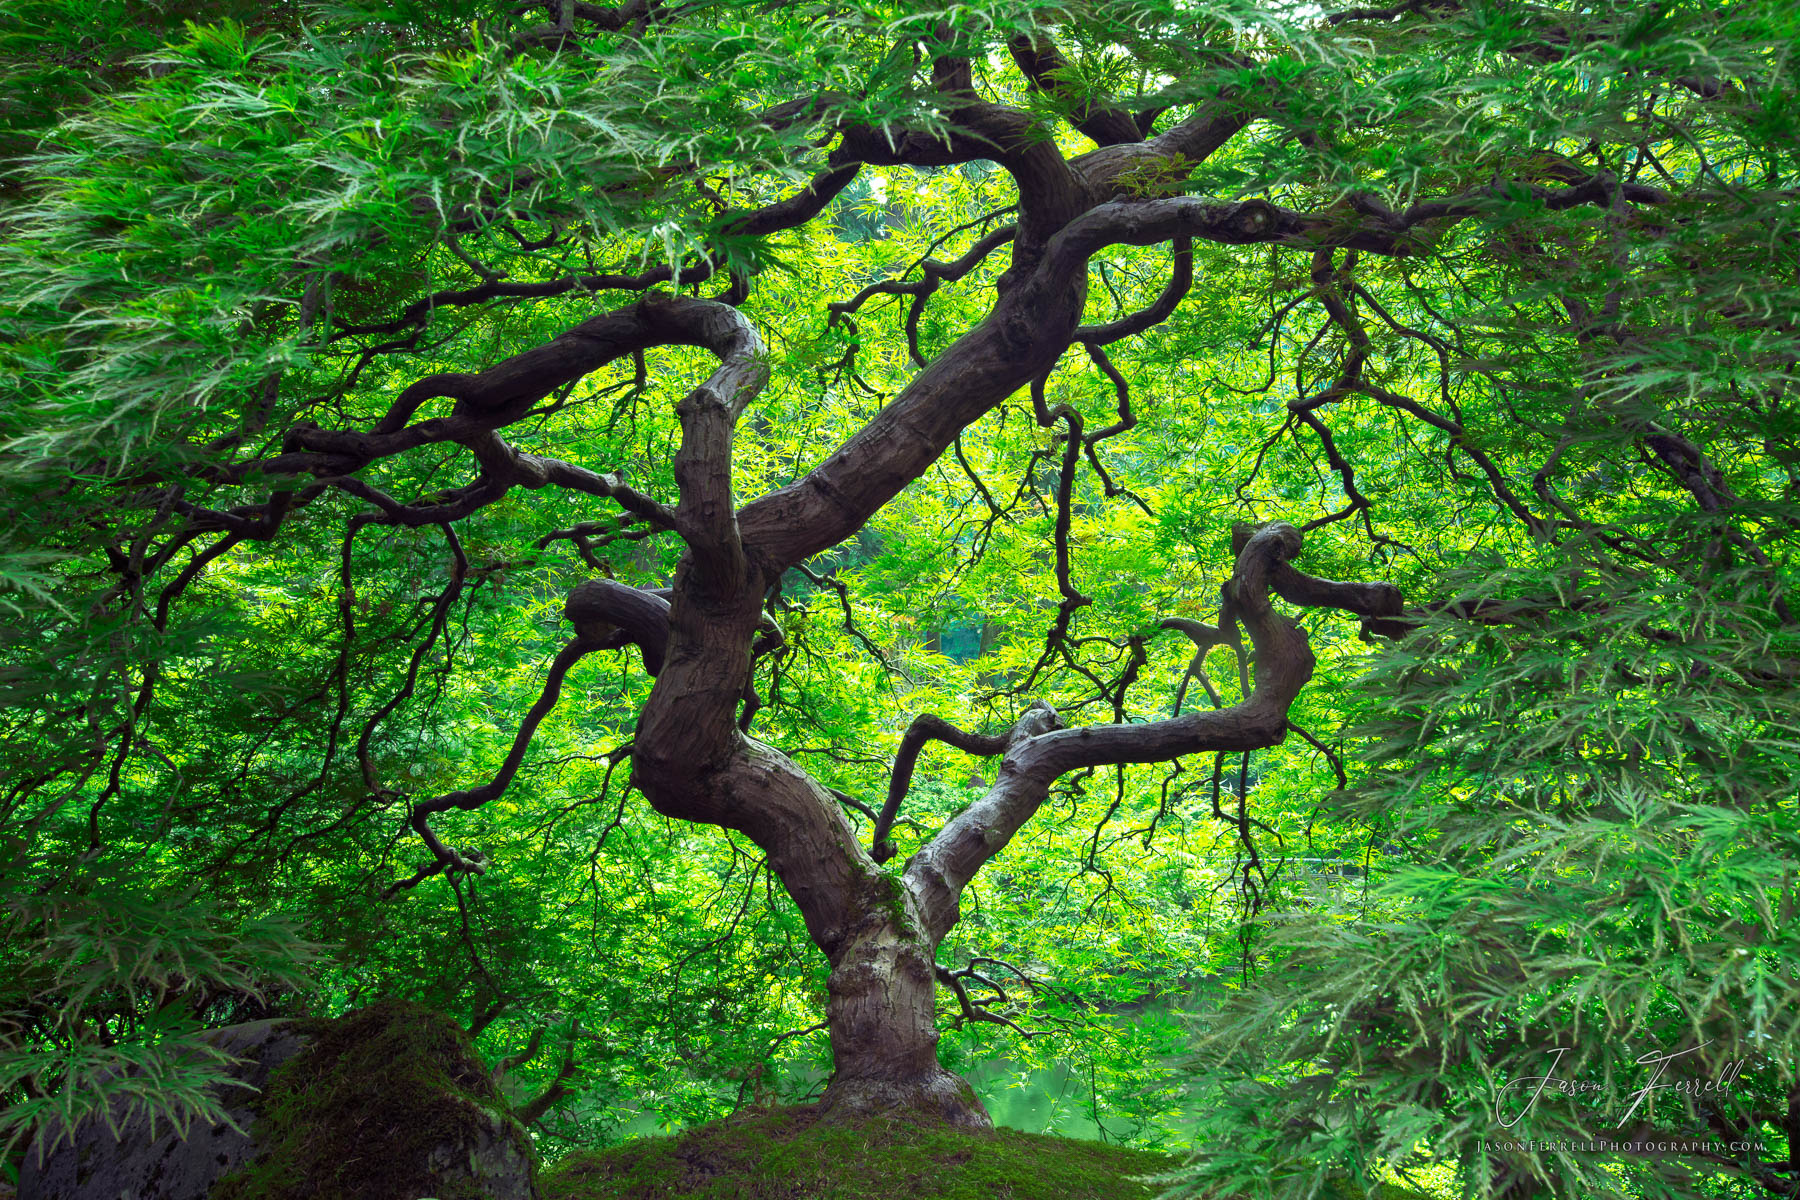 green, japanese maple, branches, tree, crown, foliage, leaves, branches, plant, trunk, peter lik, tree of life, inner peace, photo